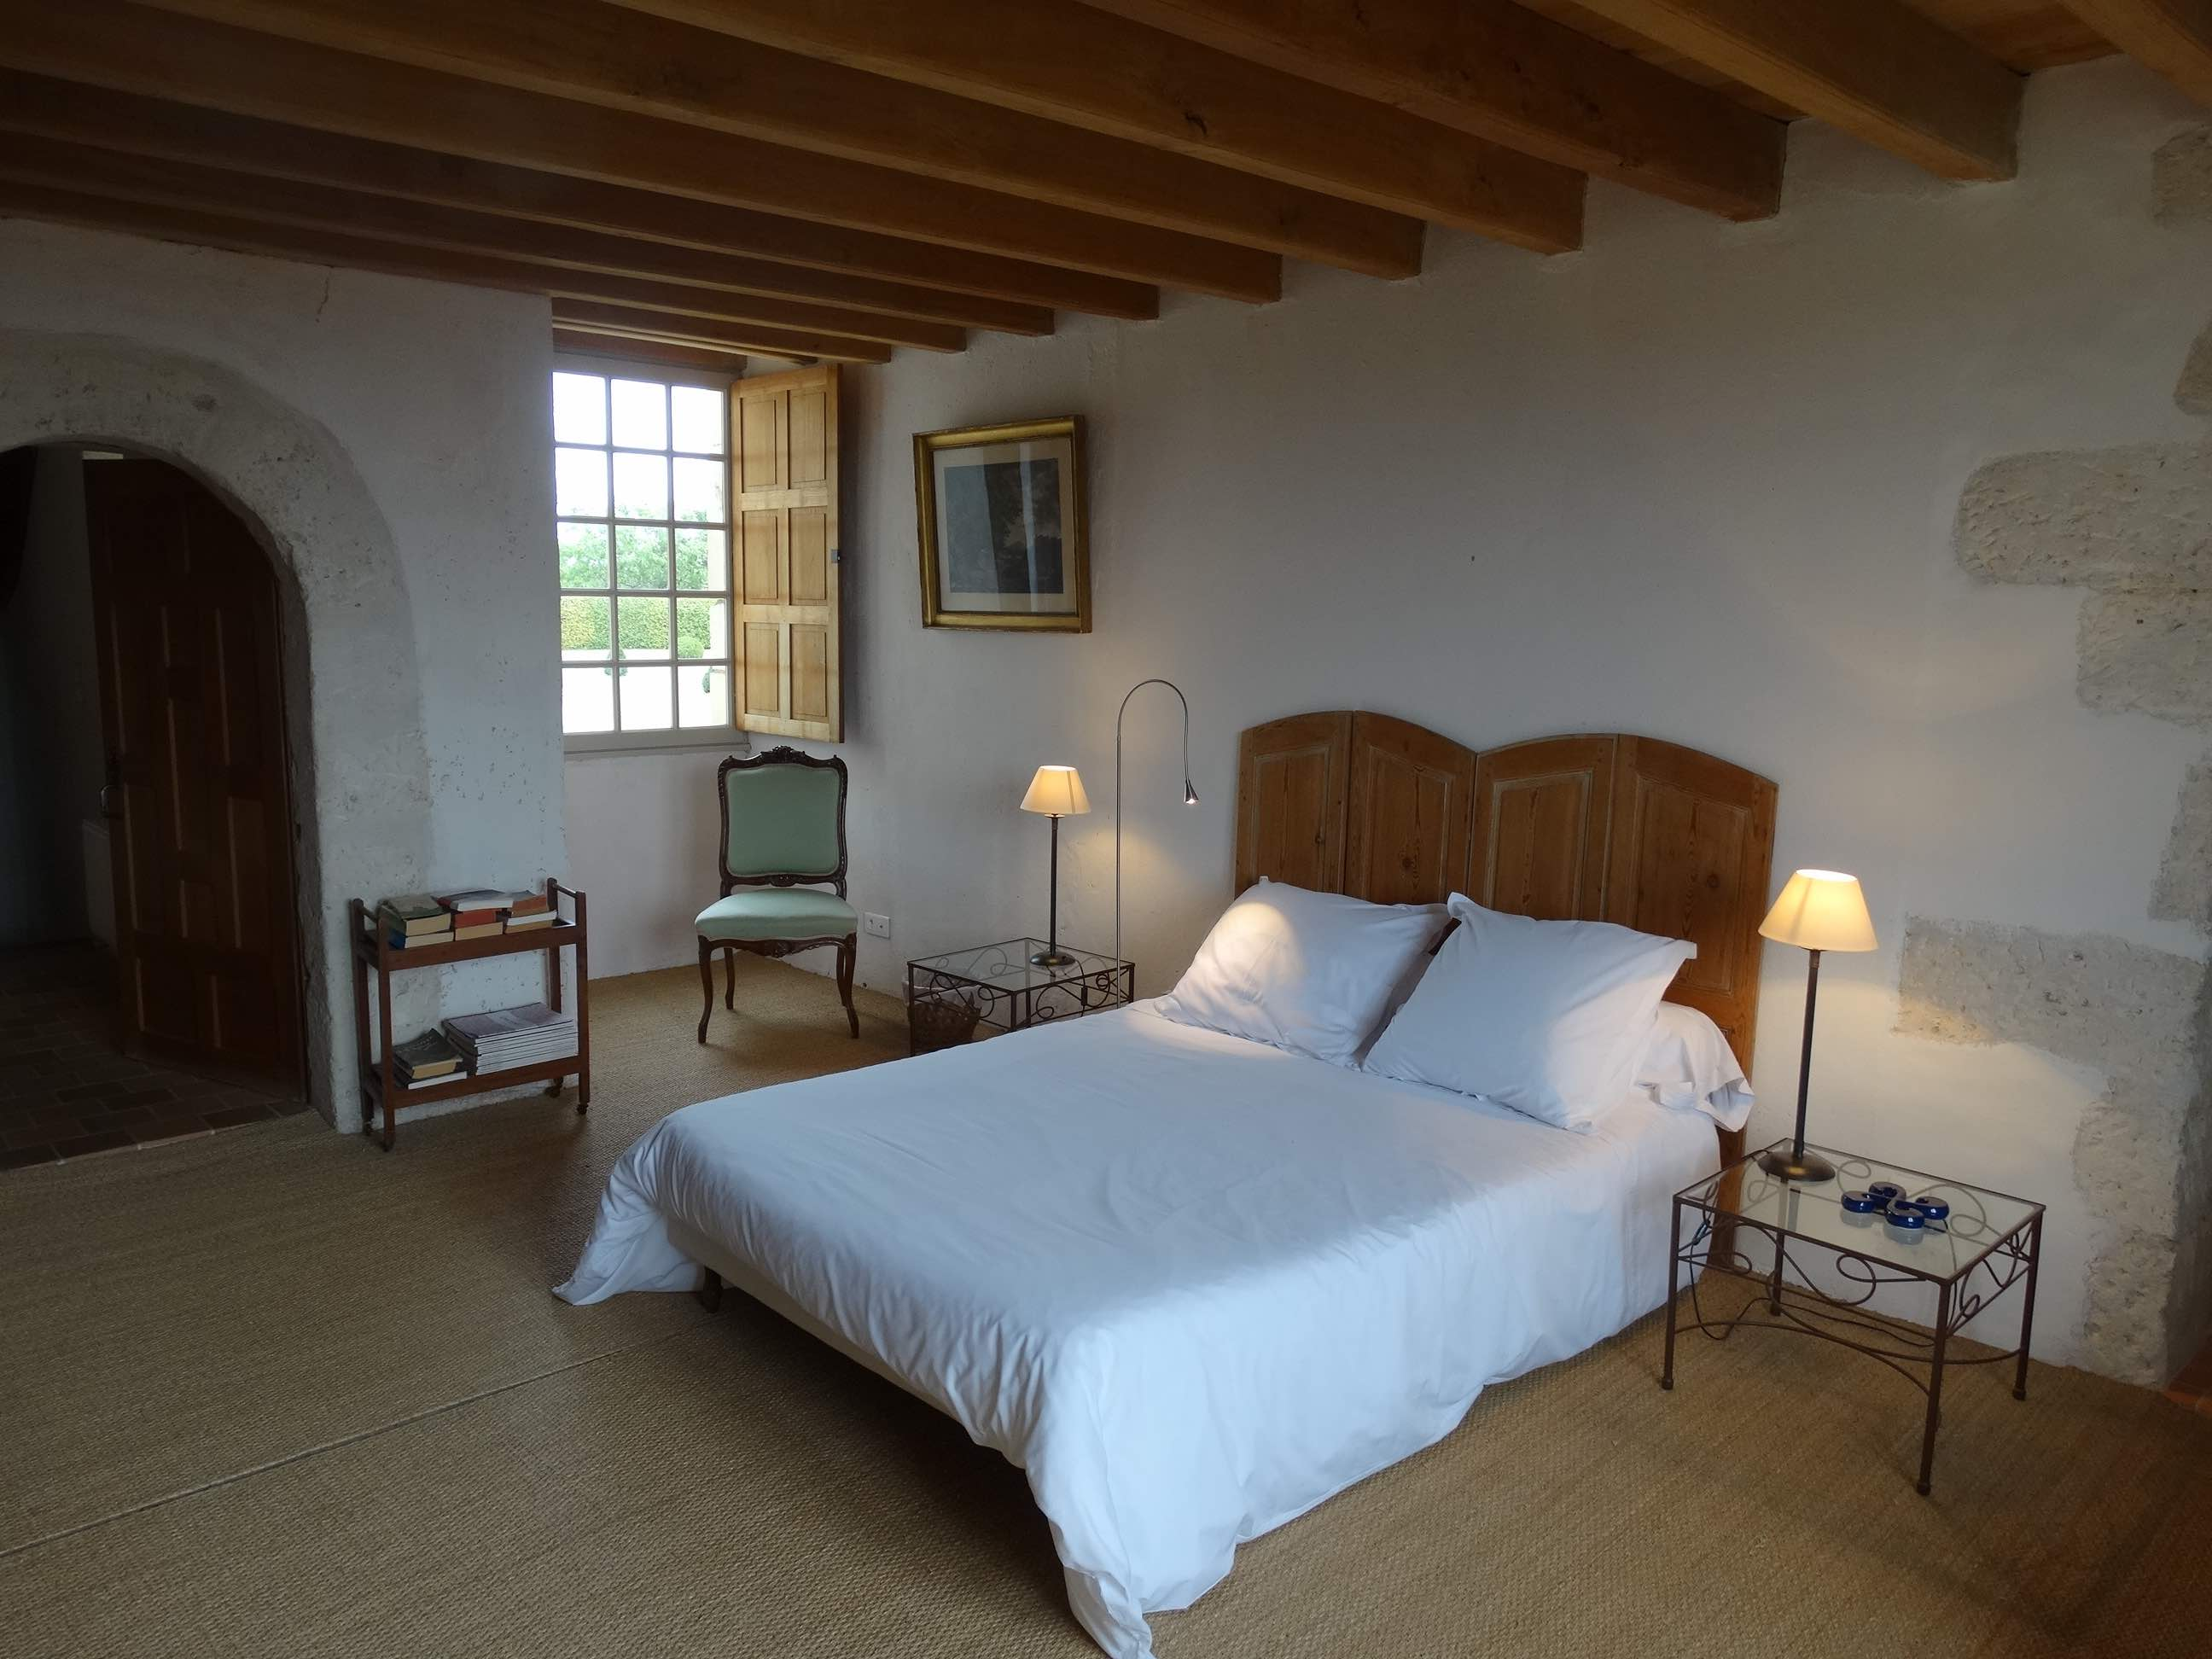 The Charlotte's bedroom, Manoir de Puymangou, France